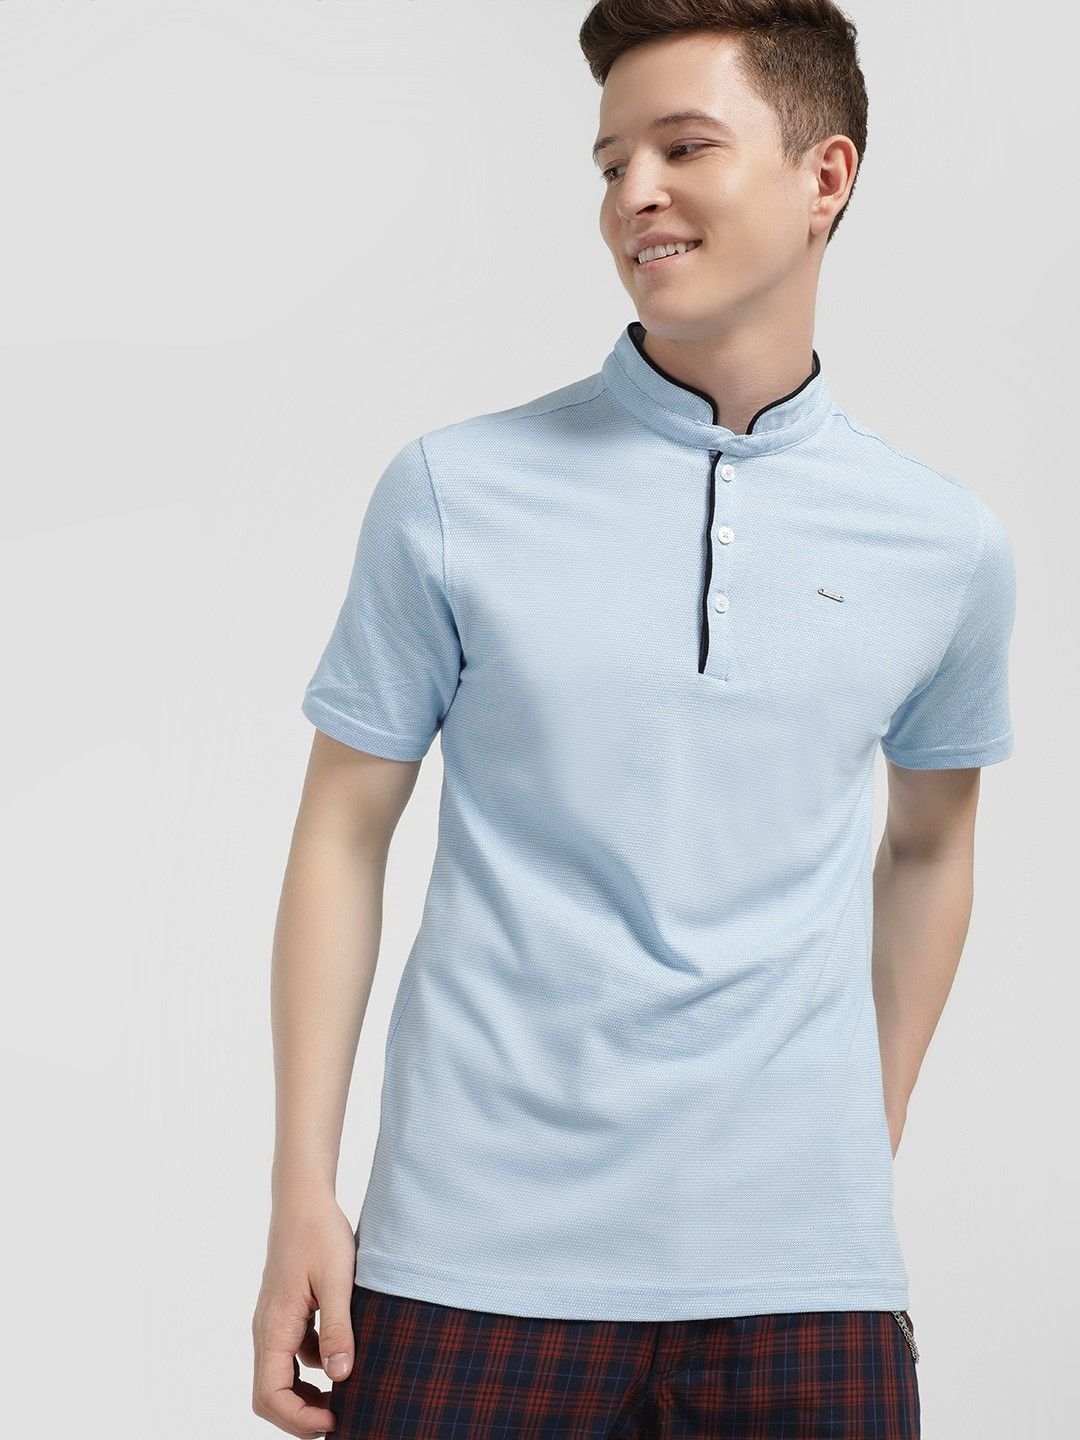 Lee Cooper Blue Knitted Polo Shirt 1